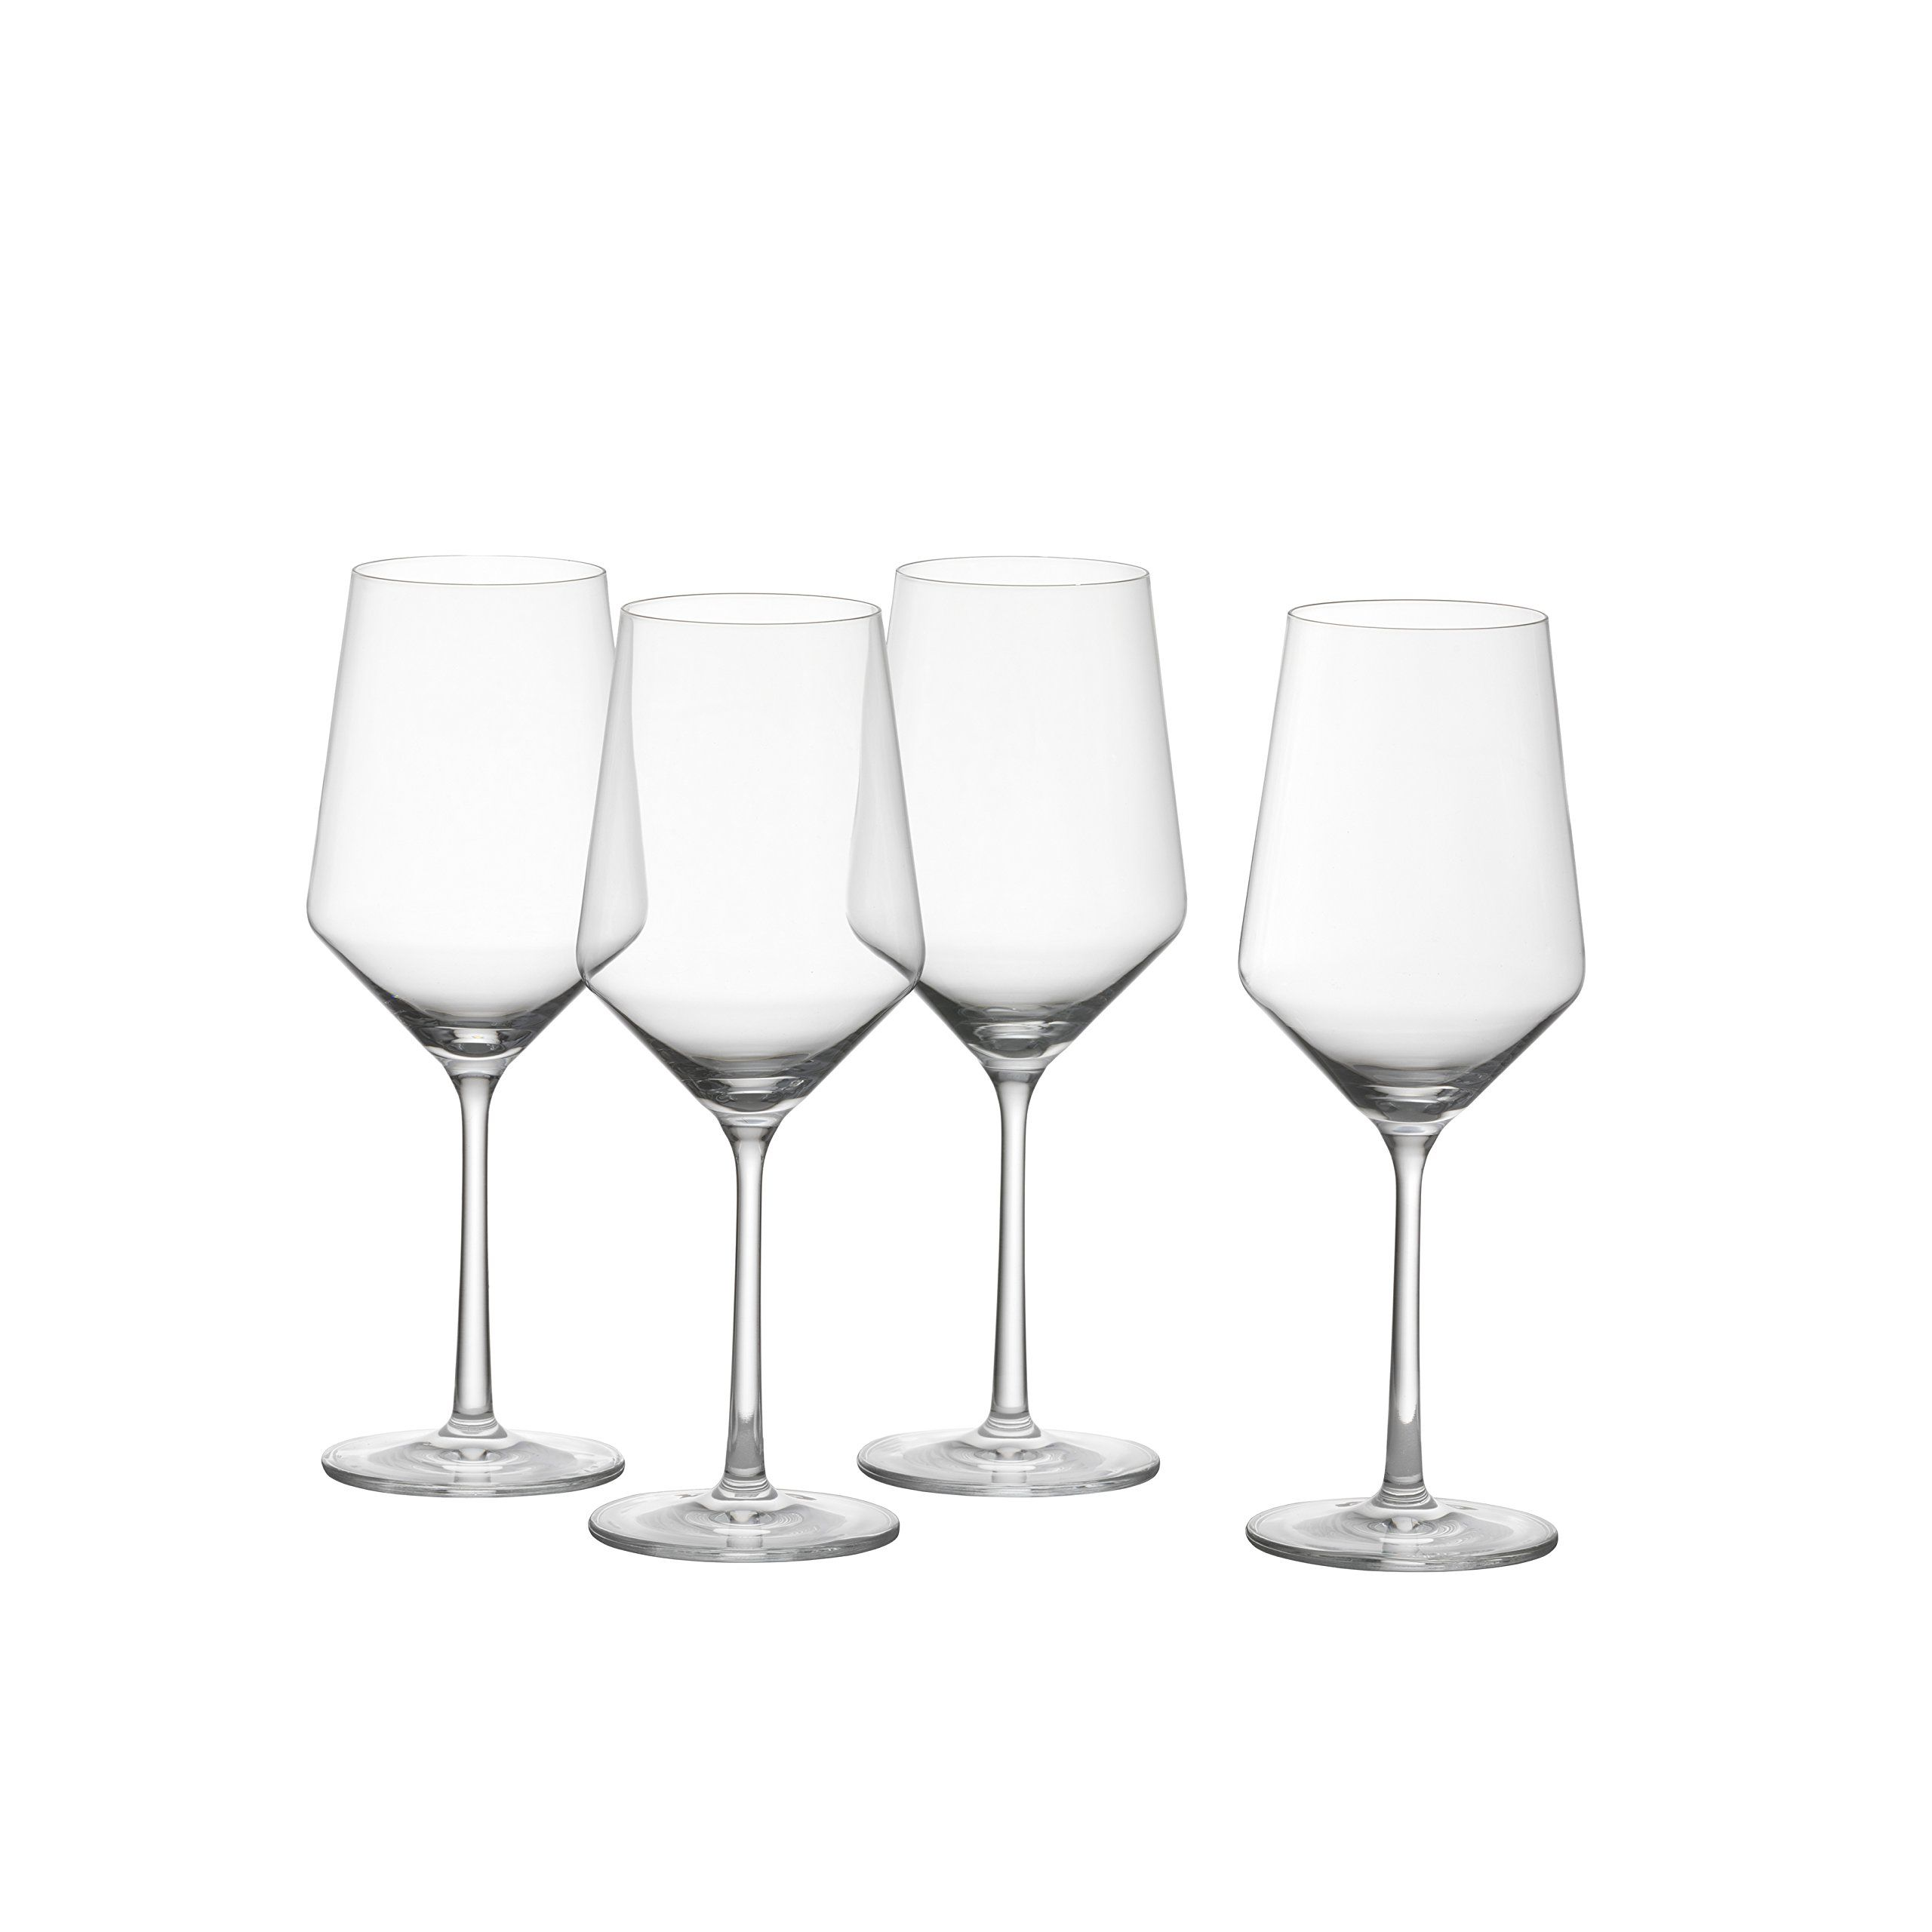 Schott Zwiesel Tritan Crystal Glass Pure Stemware Collection Cabernet All Purpose Red Or White Wine Glass 18 2ounce Schott Zwiesel Red Wine Glasses Wine Glass Schott zwiesel tritan crystal glass